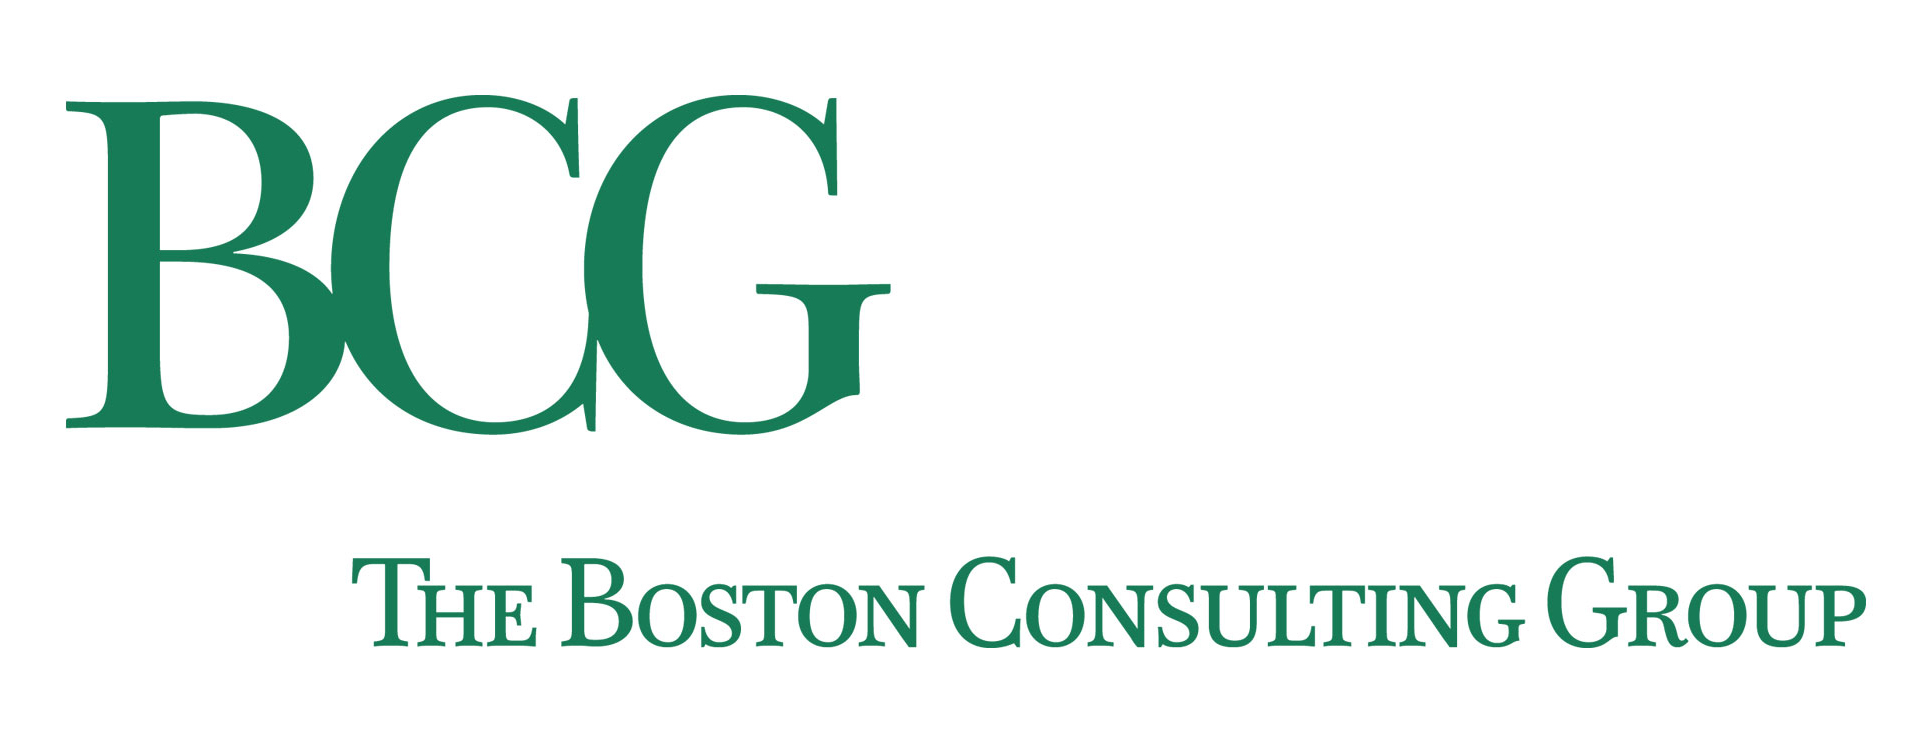 Boston Consulting Group (BCG) Associate Information / Interactive Case ...